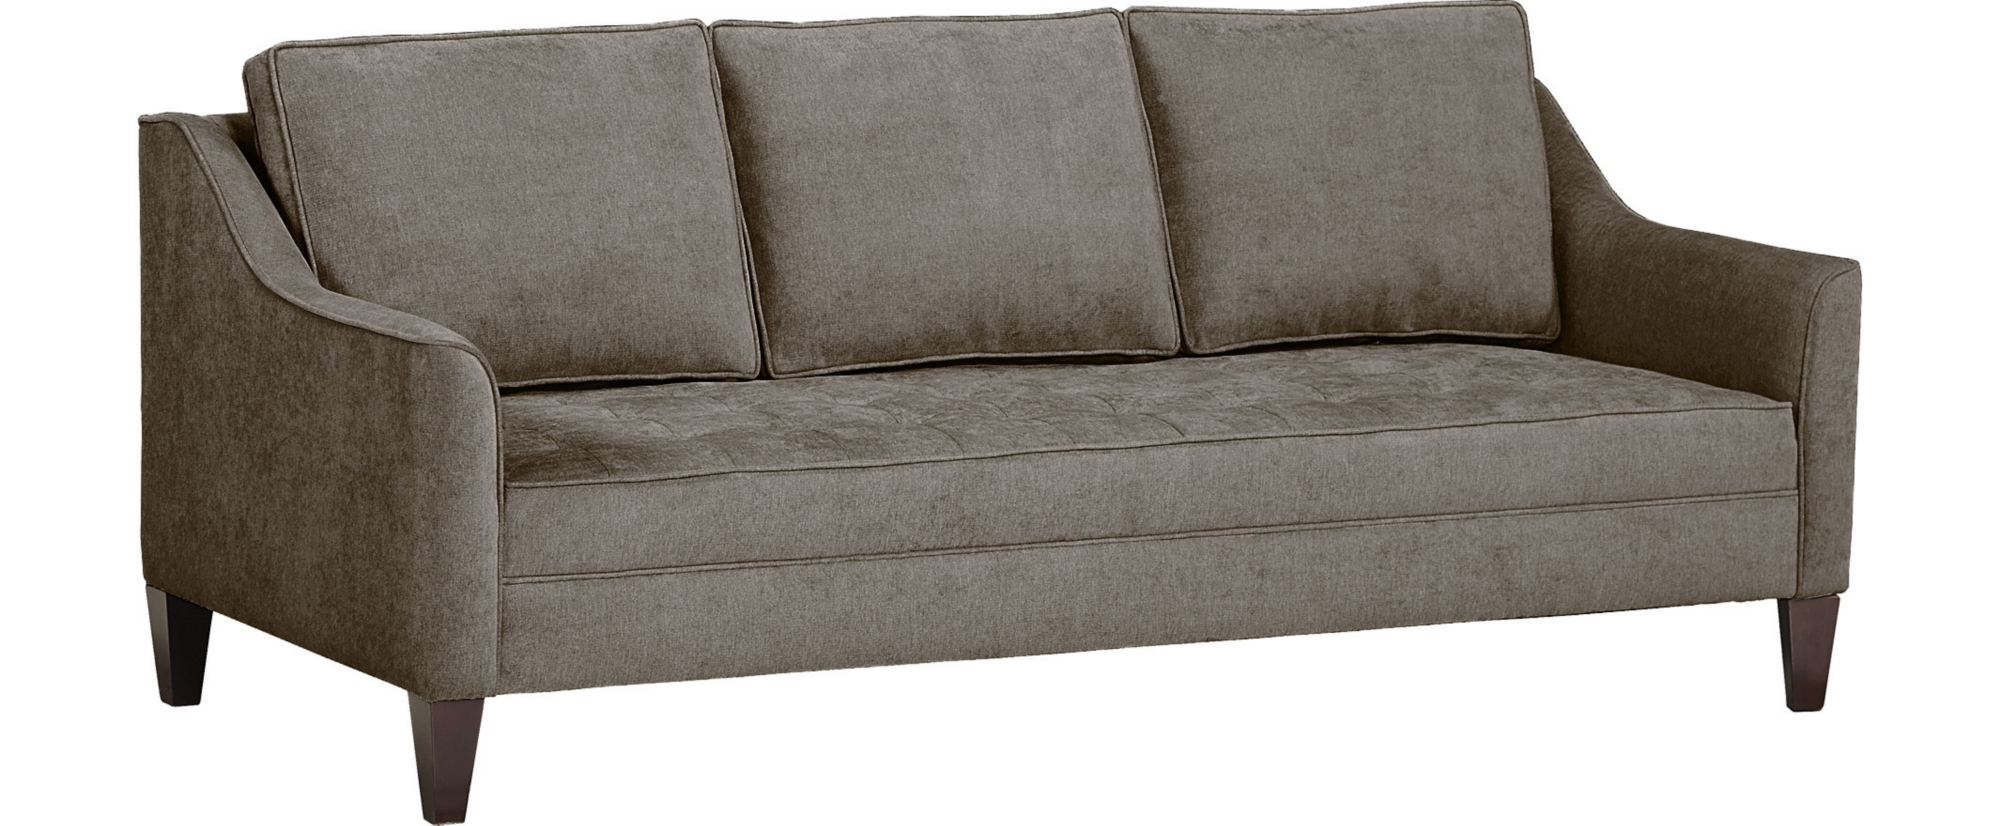 parker sofa havertys